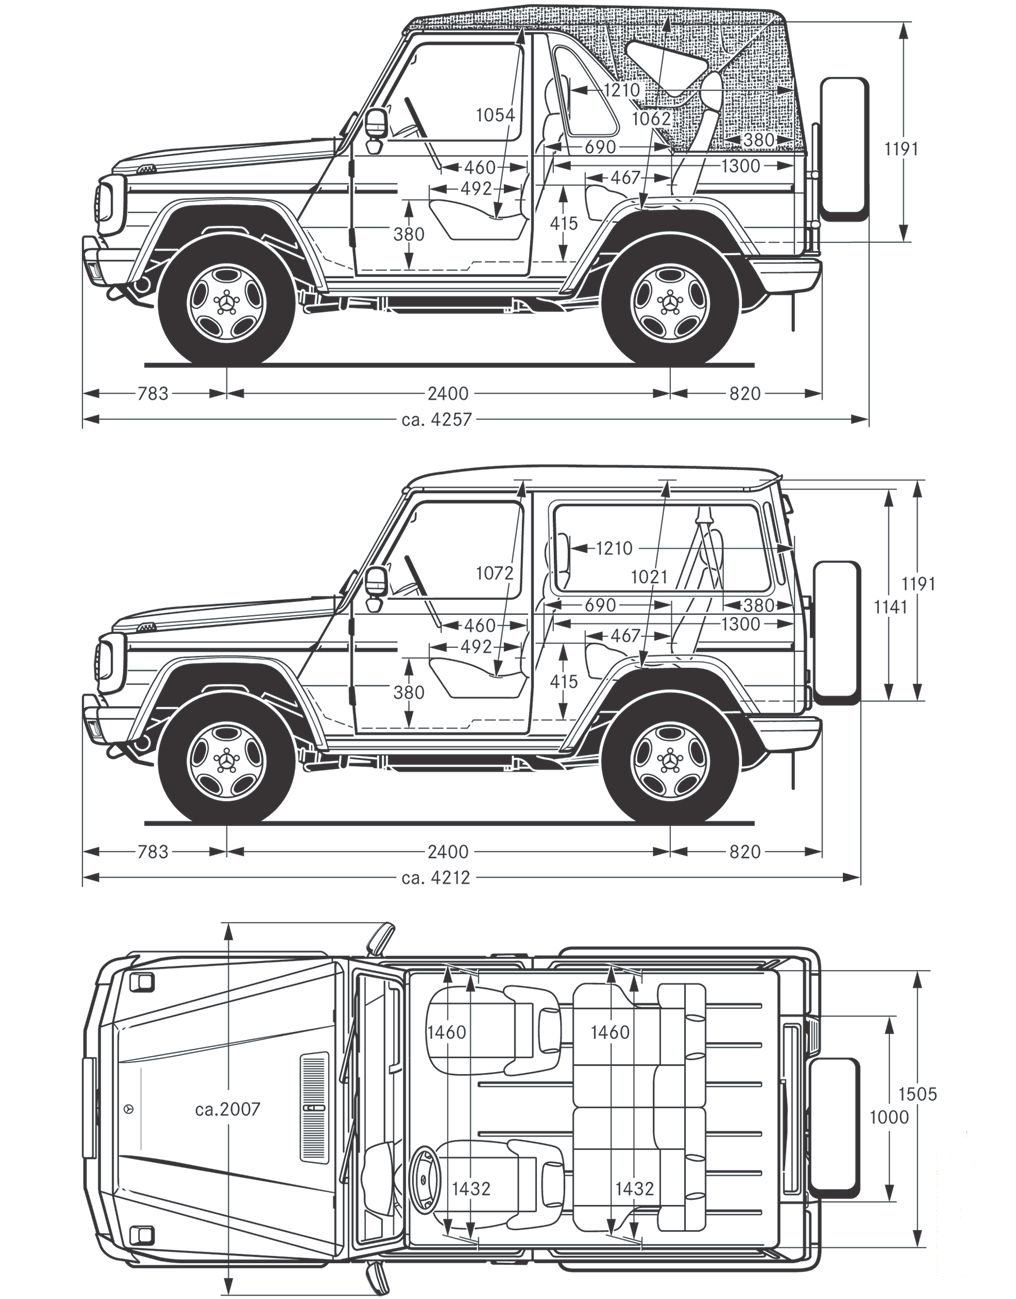 [Mercedes Classe G 463] Dimensions (Page 1) / Classe G 460